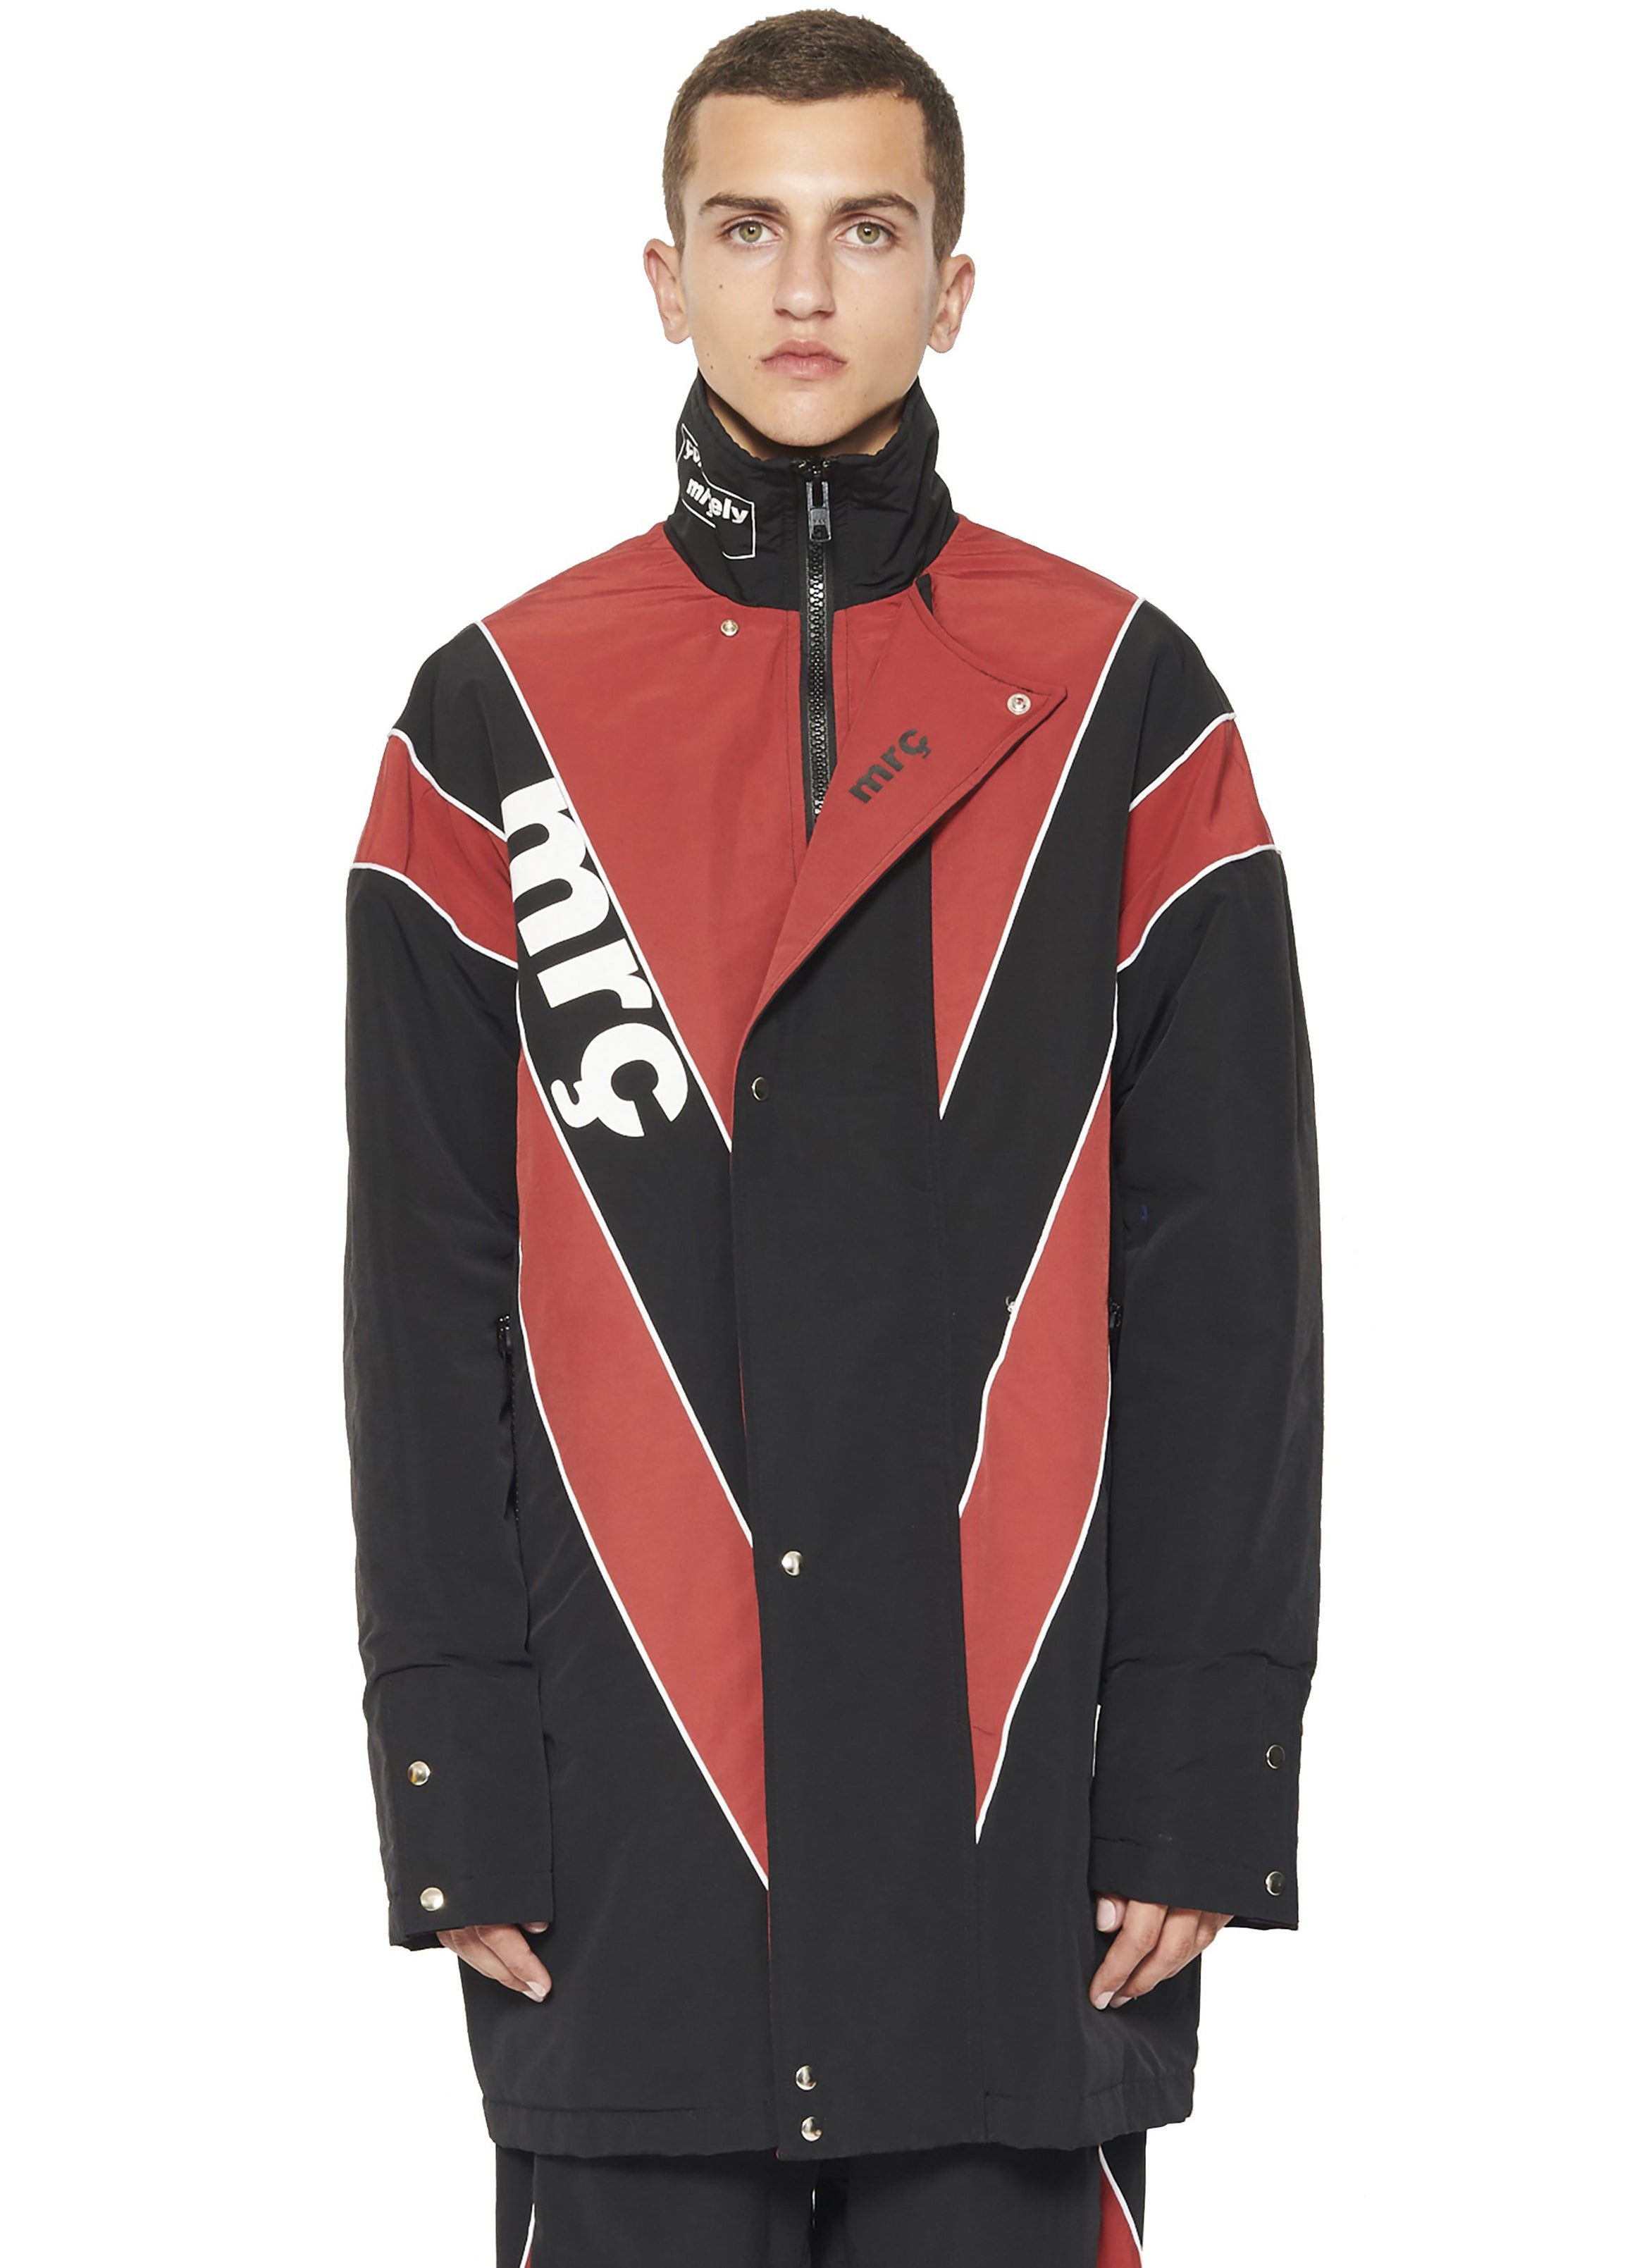 STADIUM JACKET - RED/BLACK